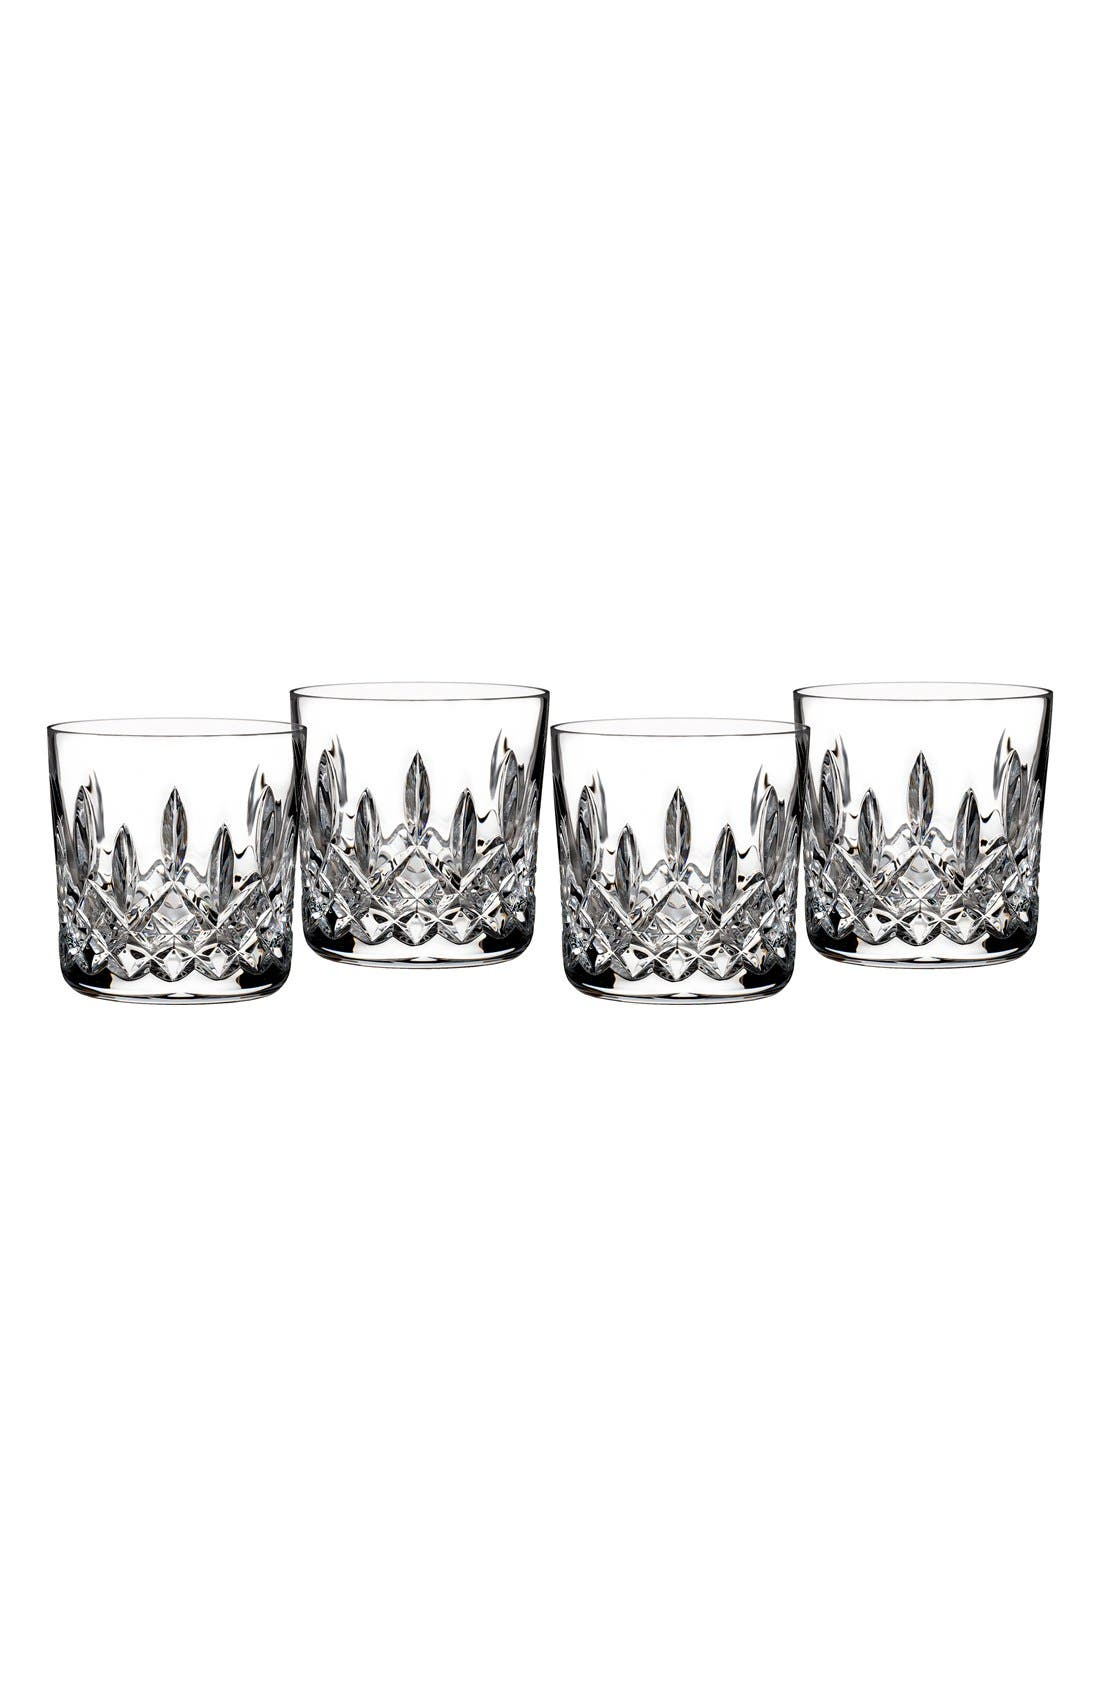 Main Image - Waterford 'Lismore' Lead Crystal Straight Sided Tumblers (Set of 4)